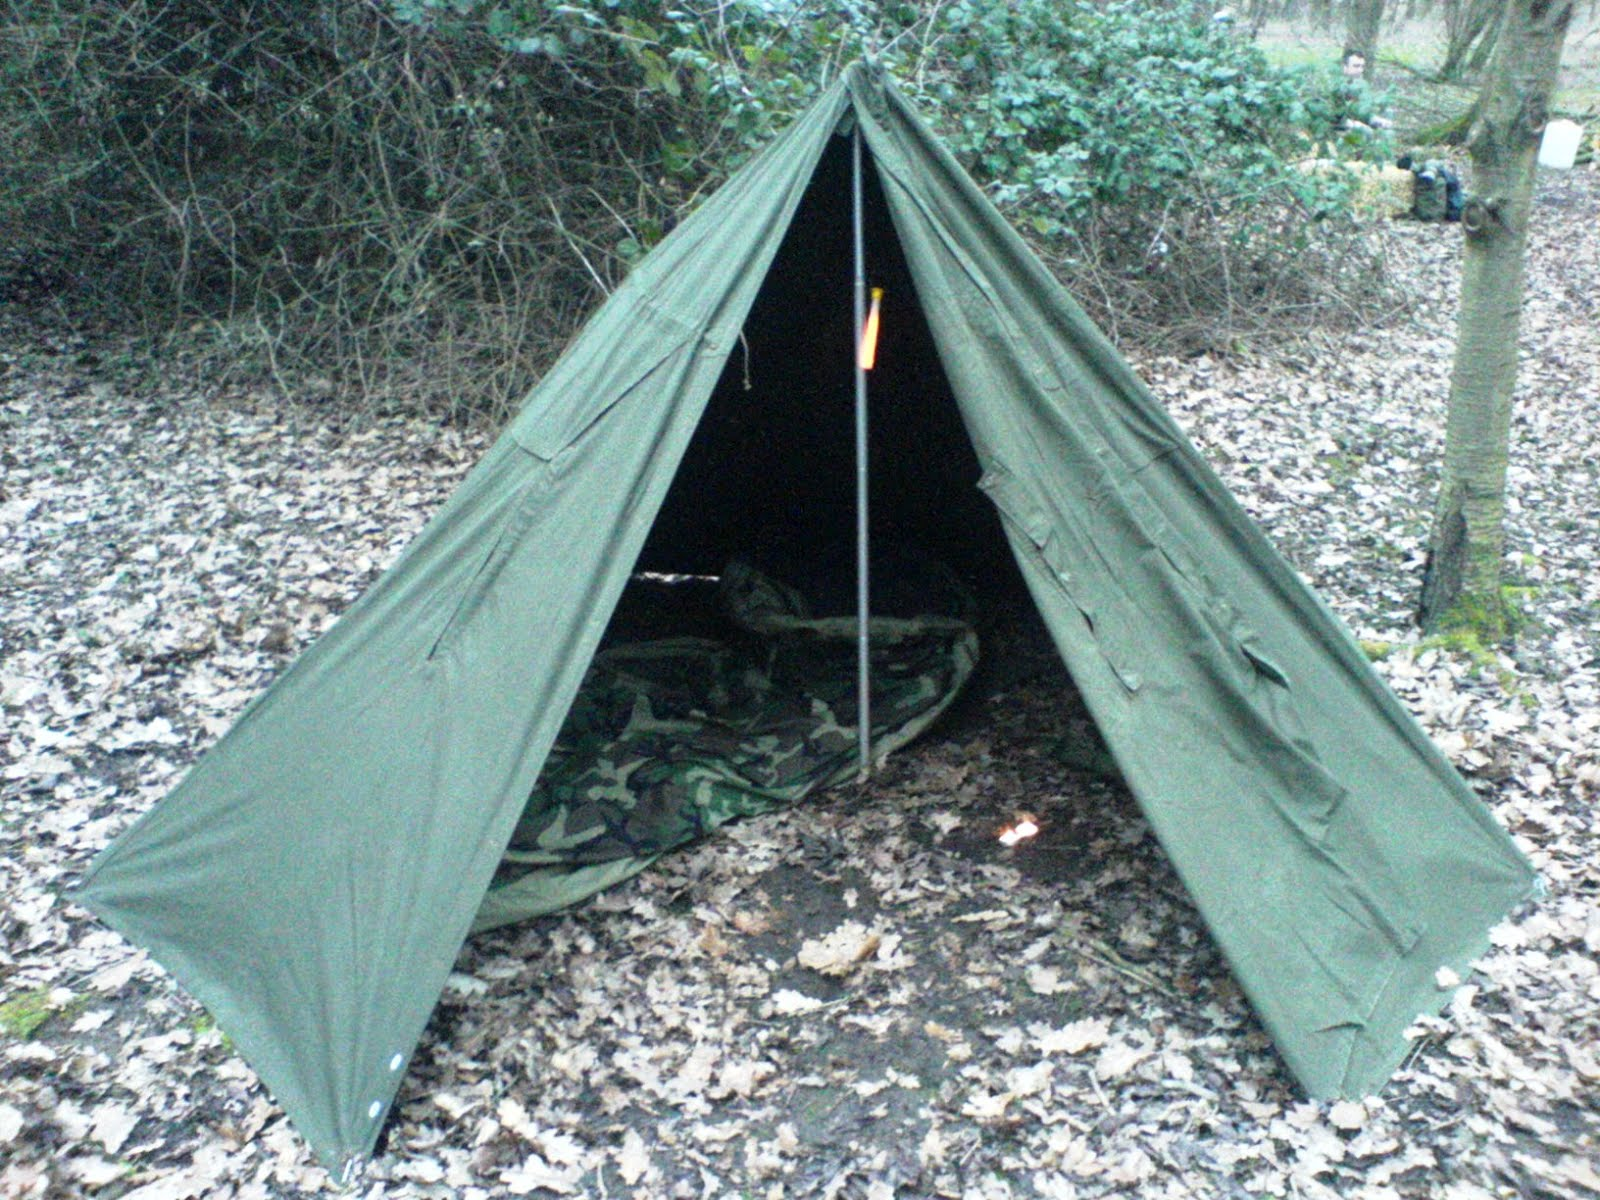 Polish Army Two Man Tent & Wilderness Living - : Polish Army Two Man Tent